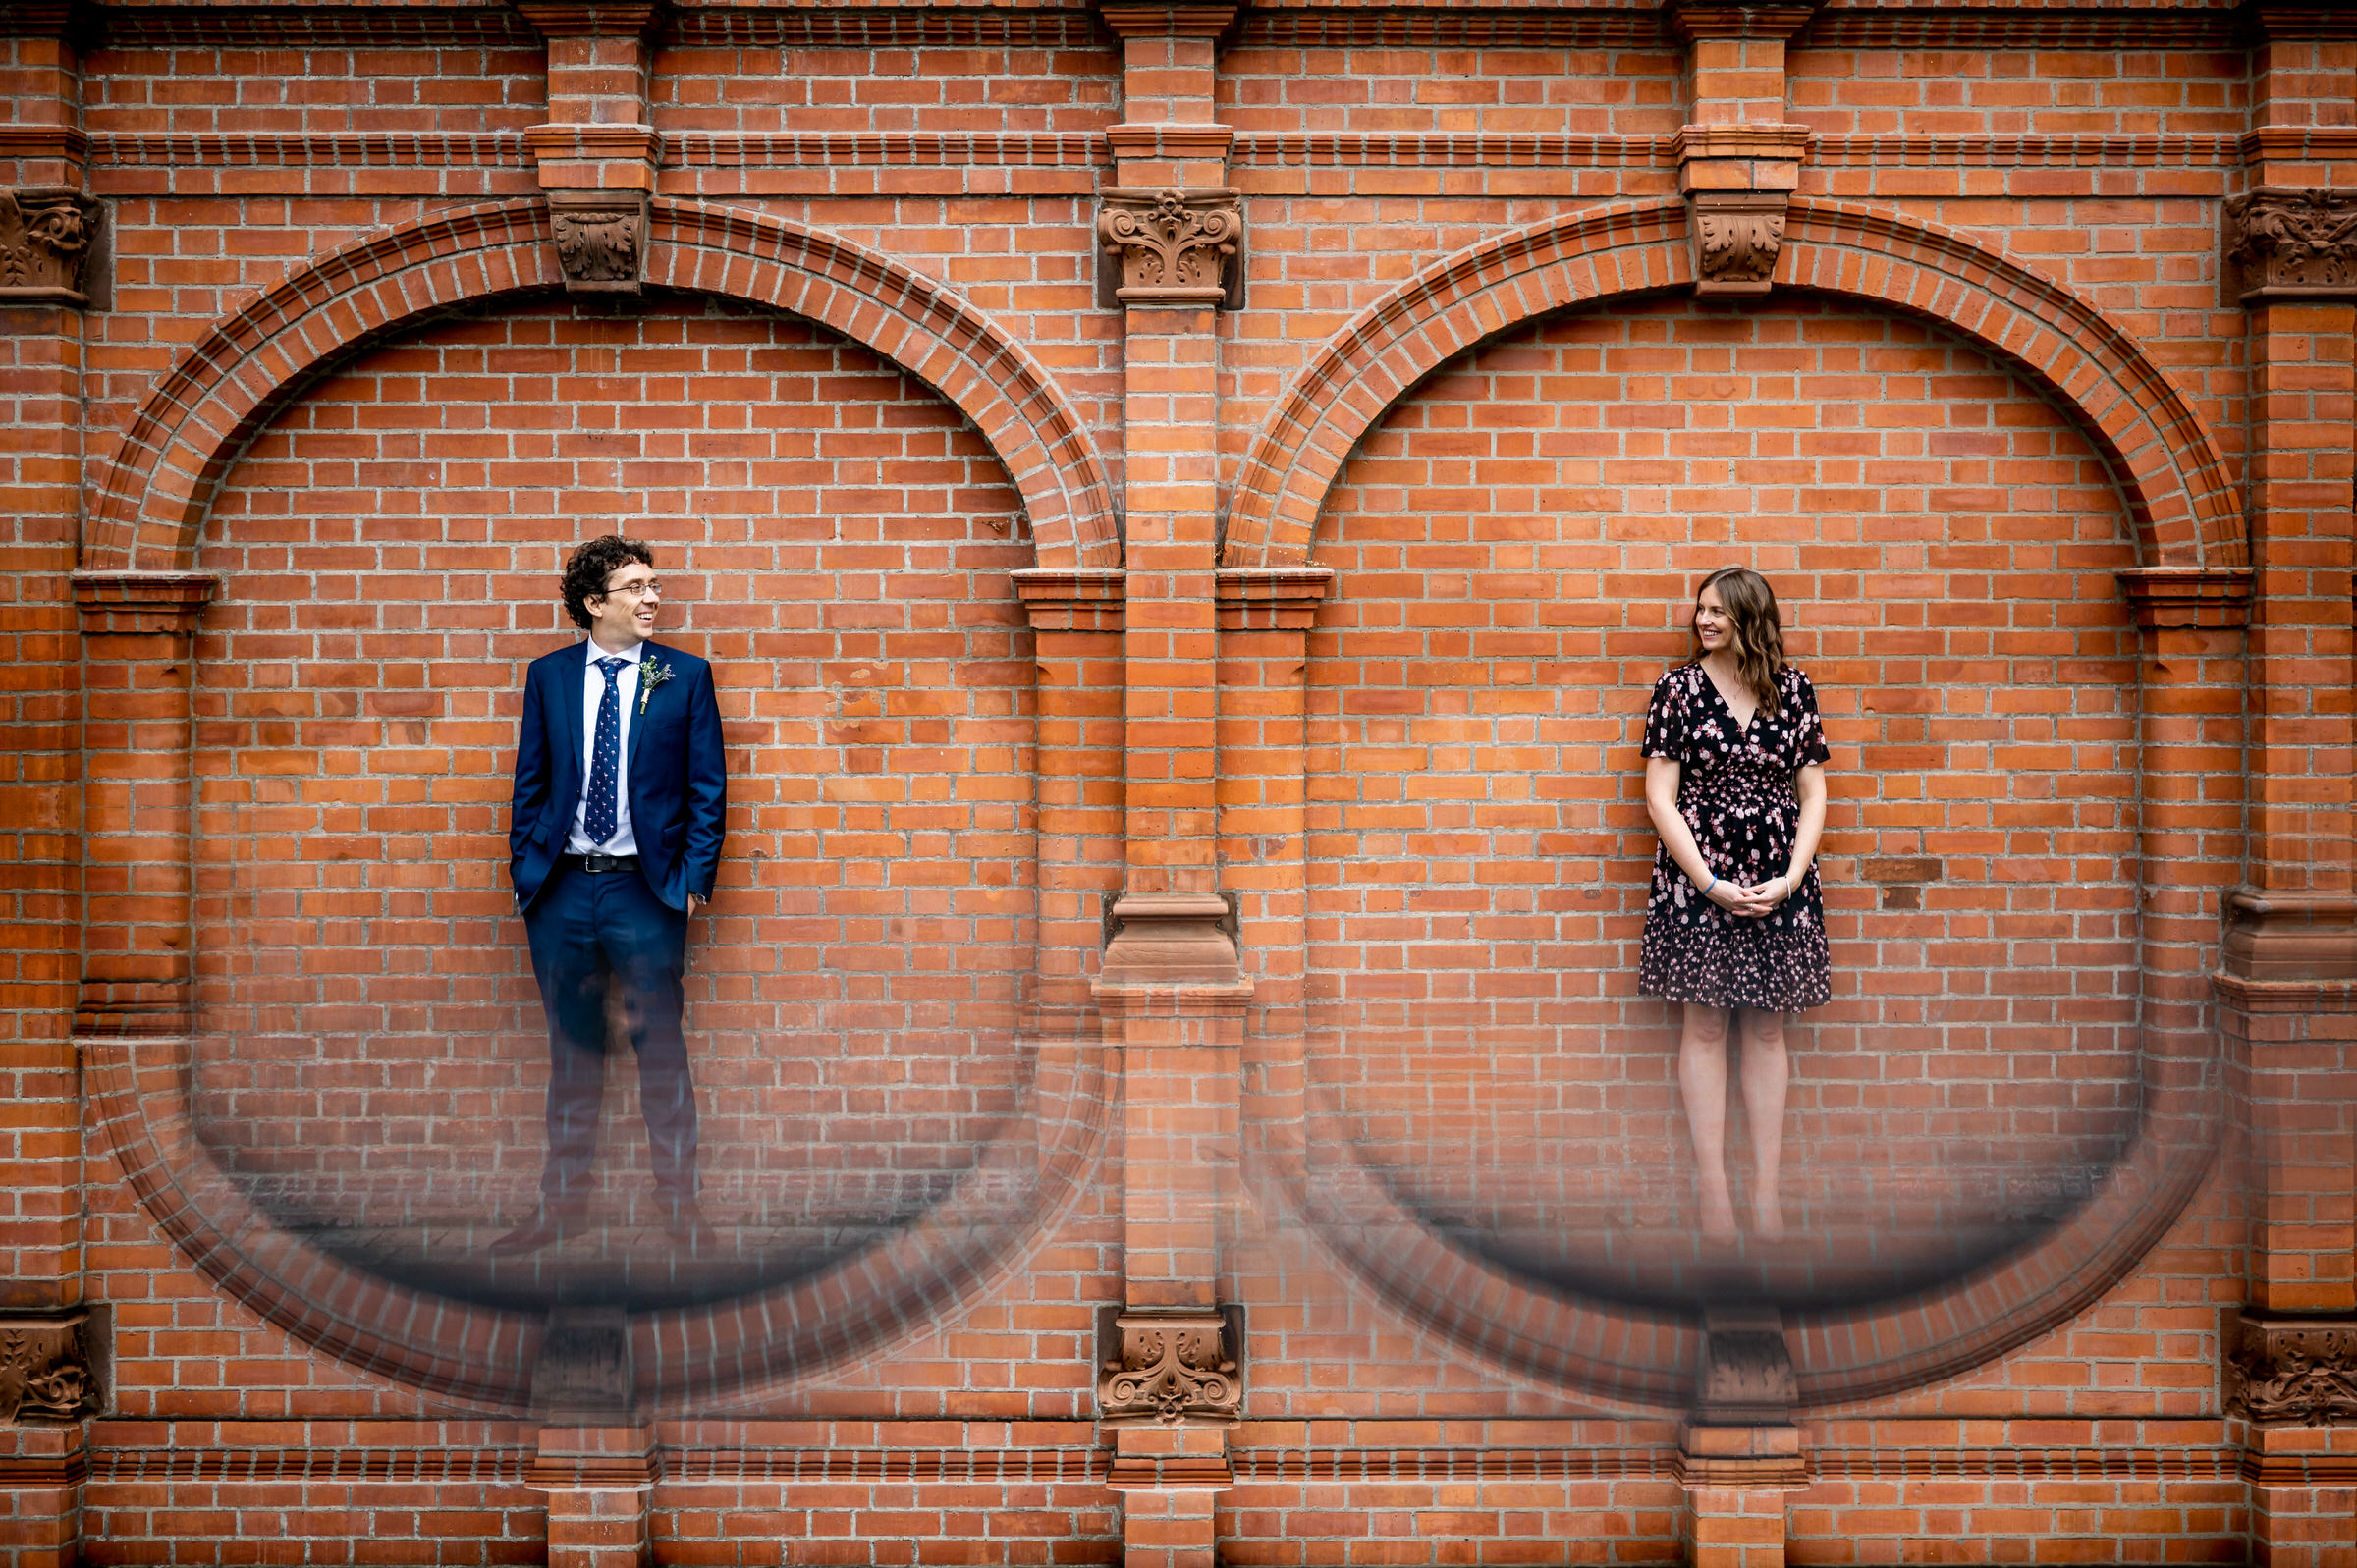 Engagement couple cameos in brick architecture - photo by John Gillooley